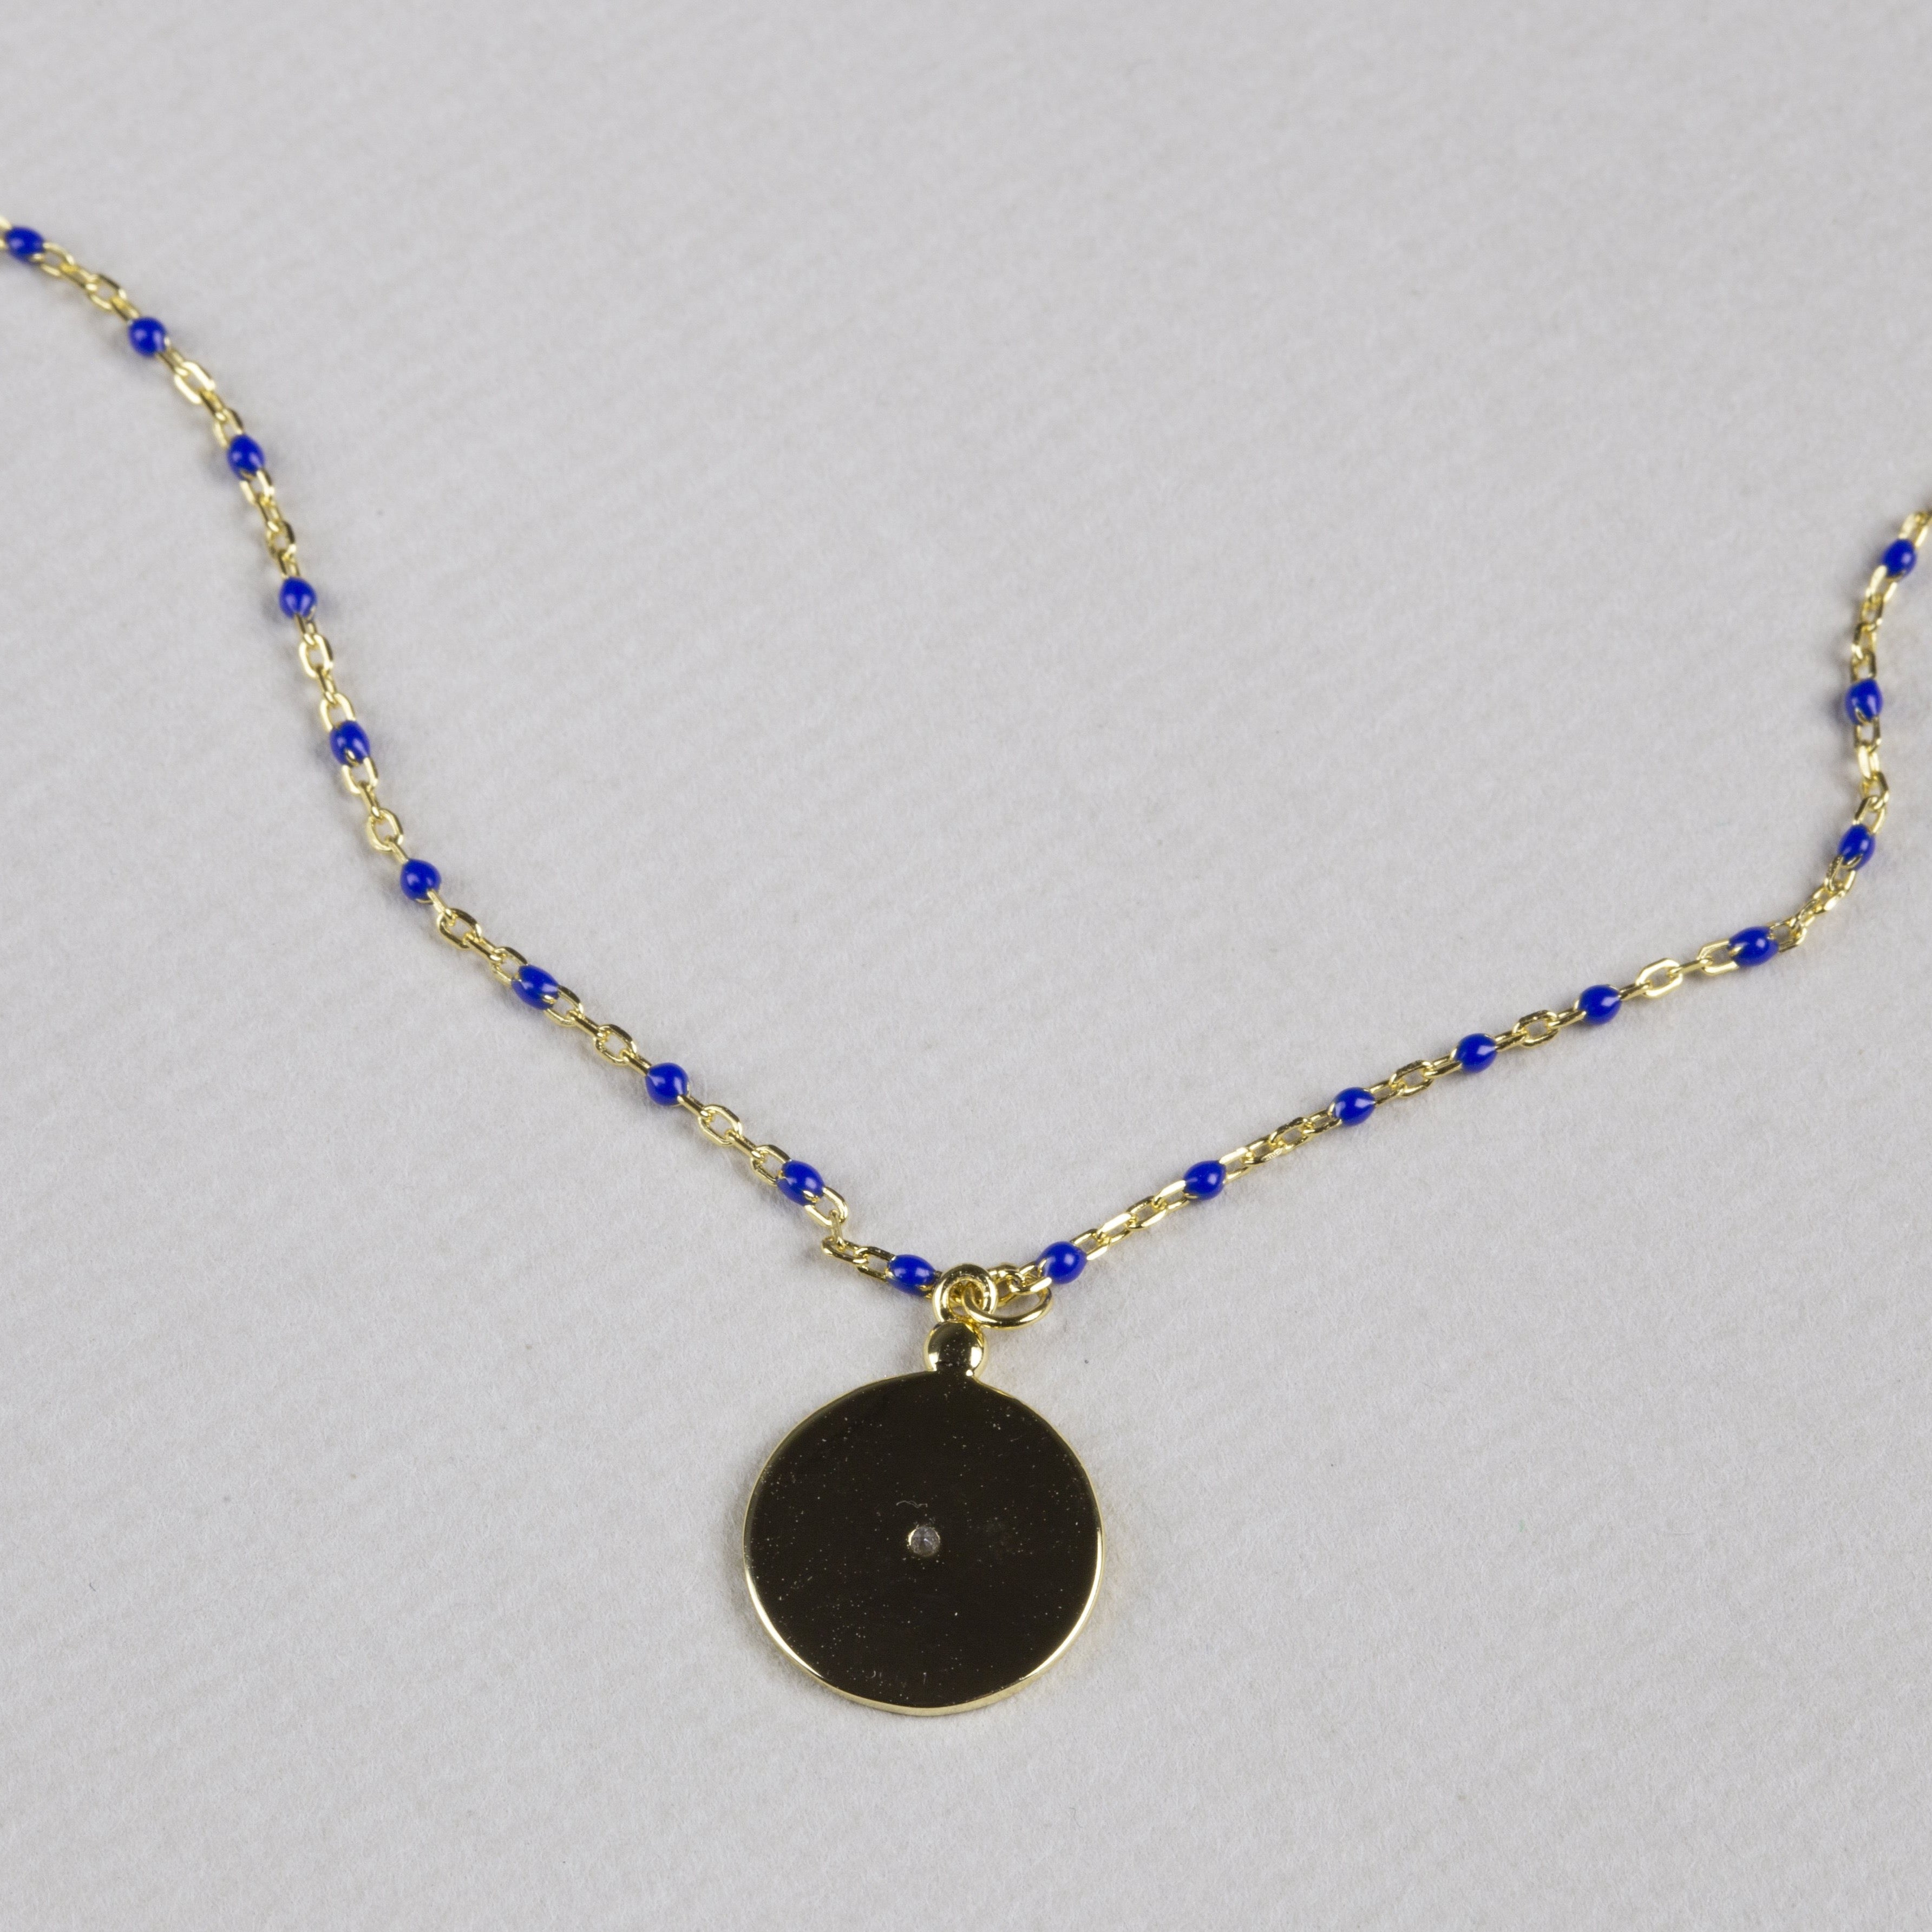 Coin Pendant Necklace with Gold Chain and Blue Beads